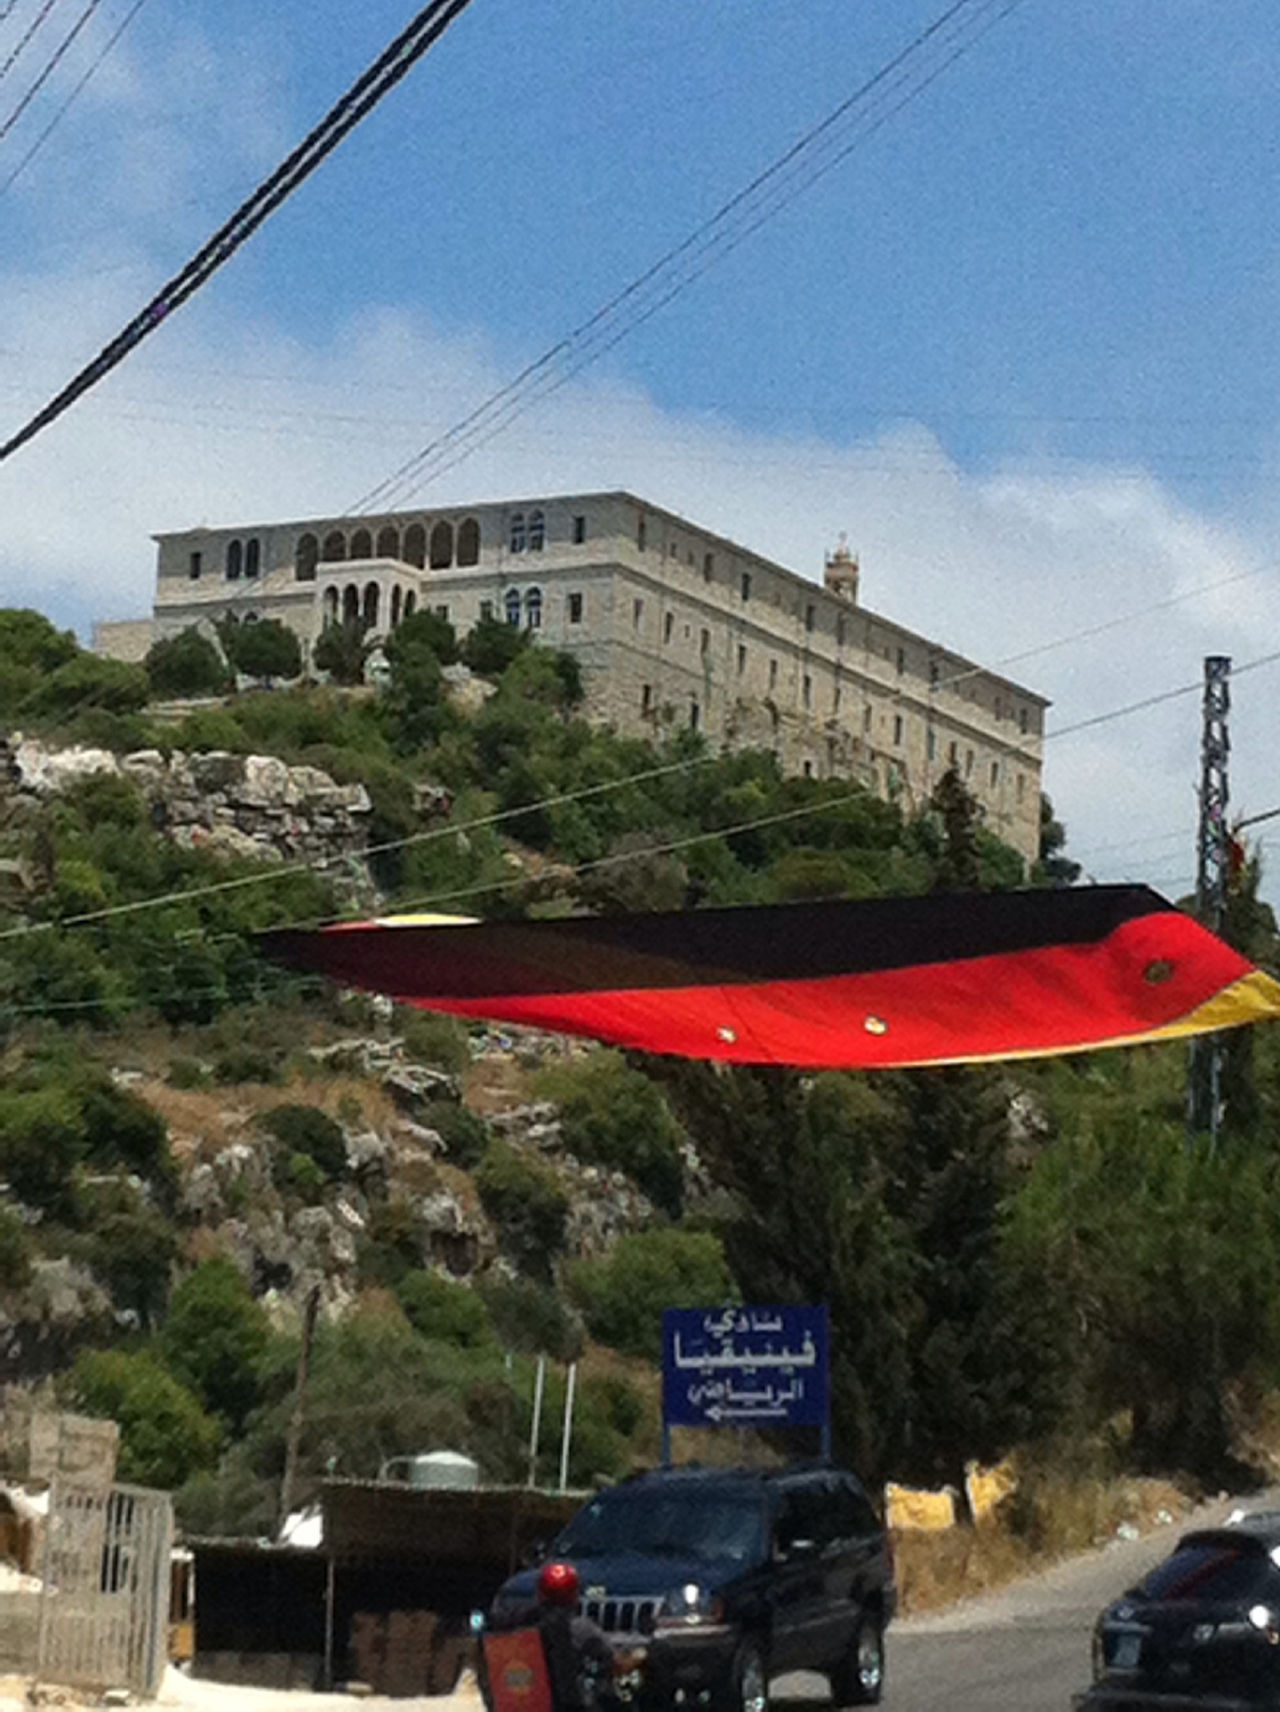 Football Fever In Byblos  Lebanon. The Notre Dame Des Secours Convent Overlooking And Blessing The German Flag